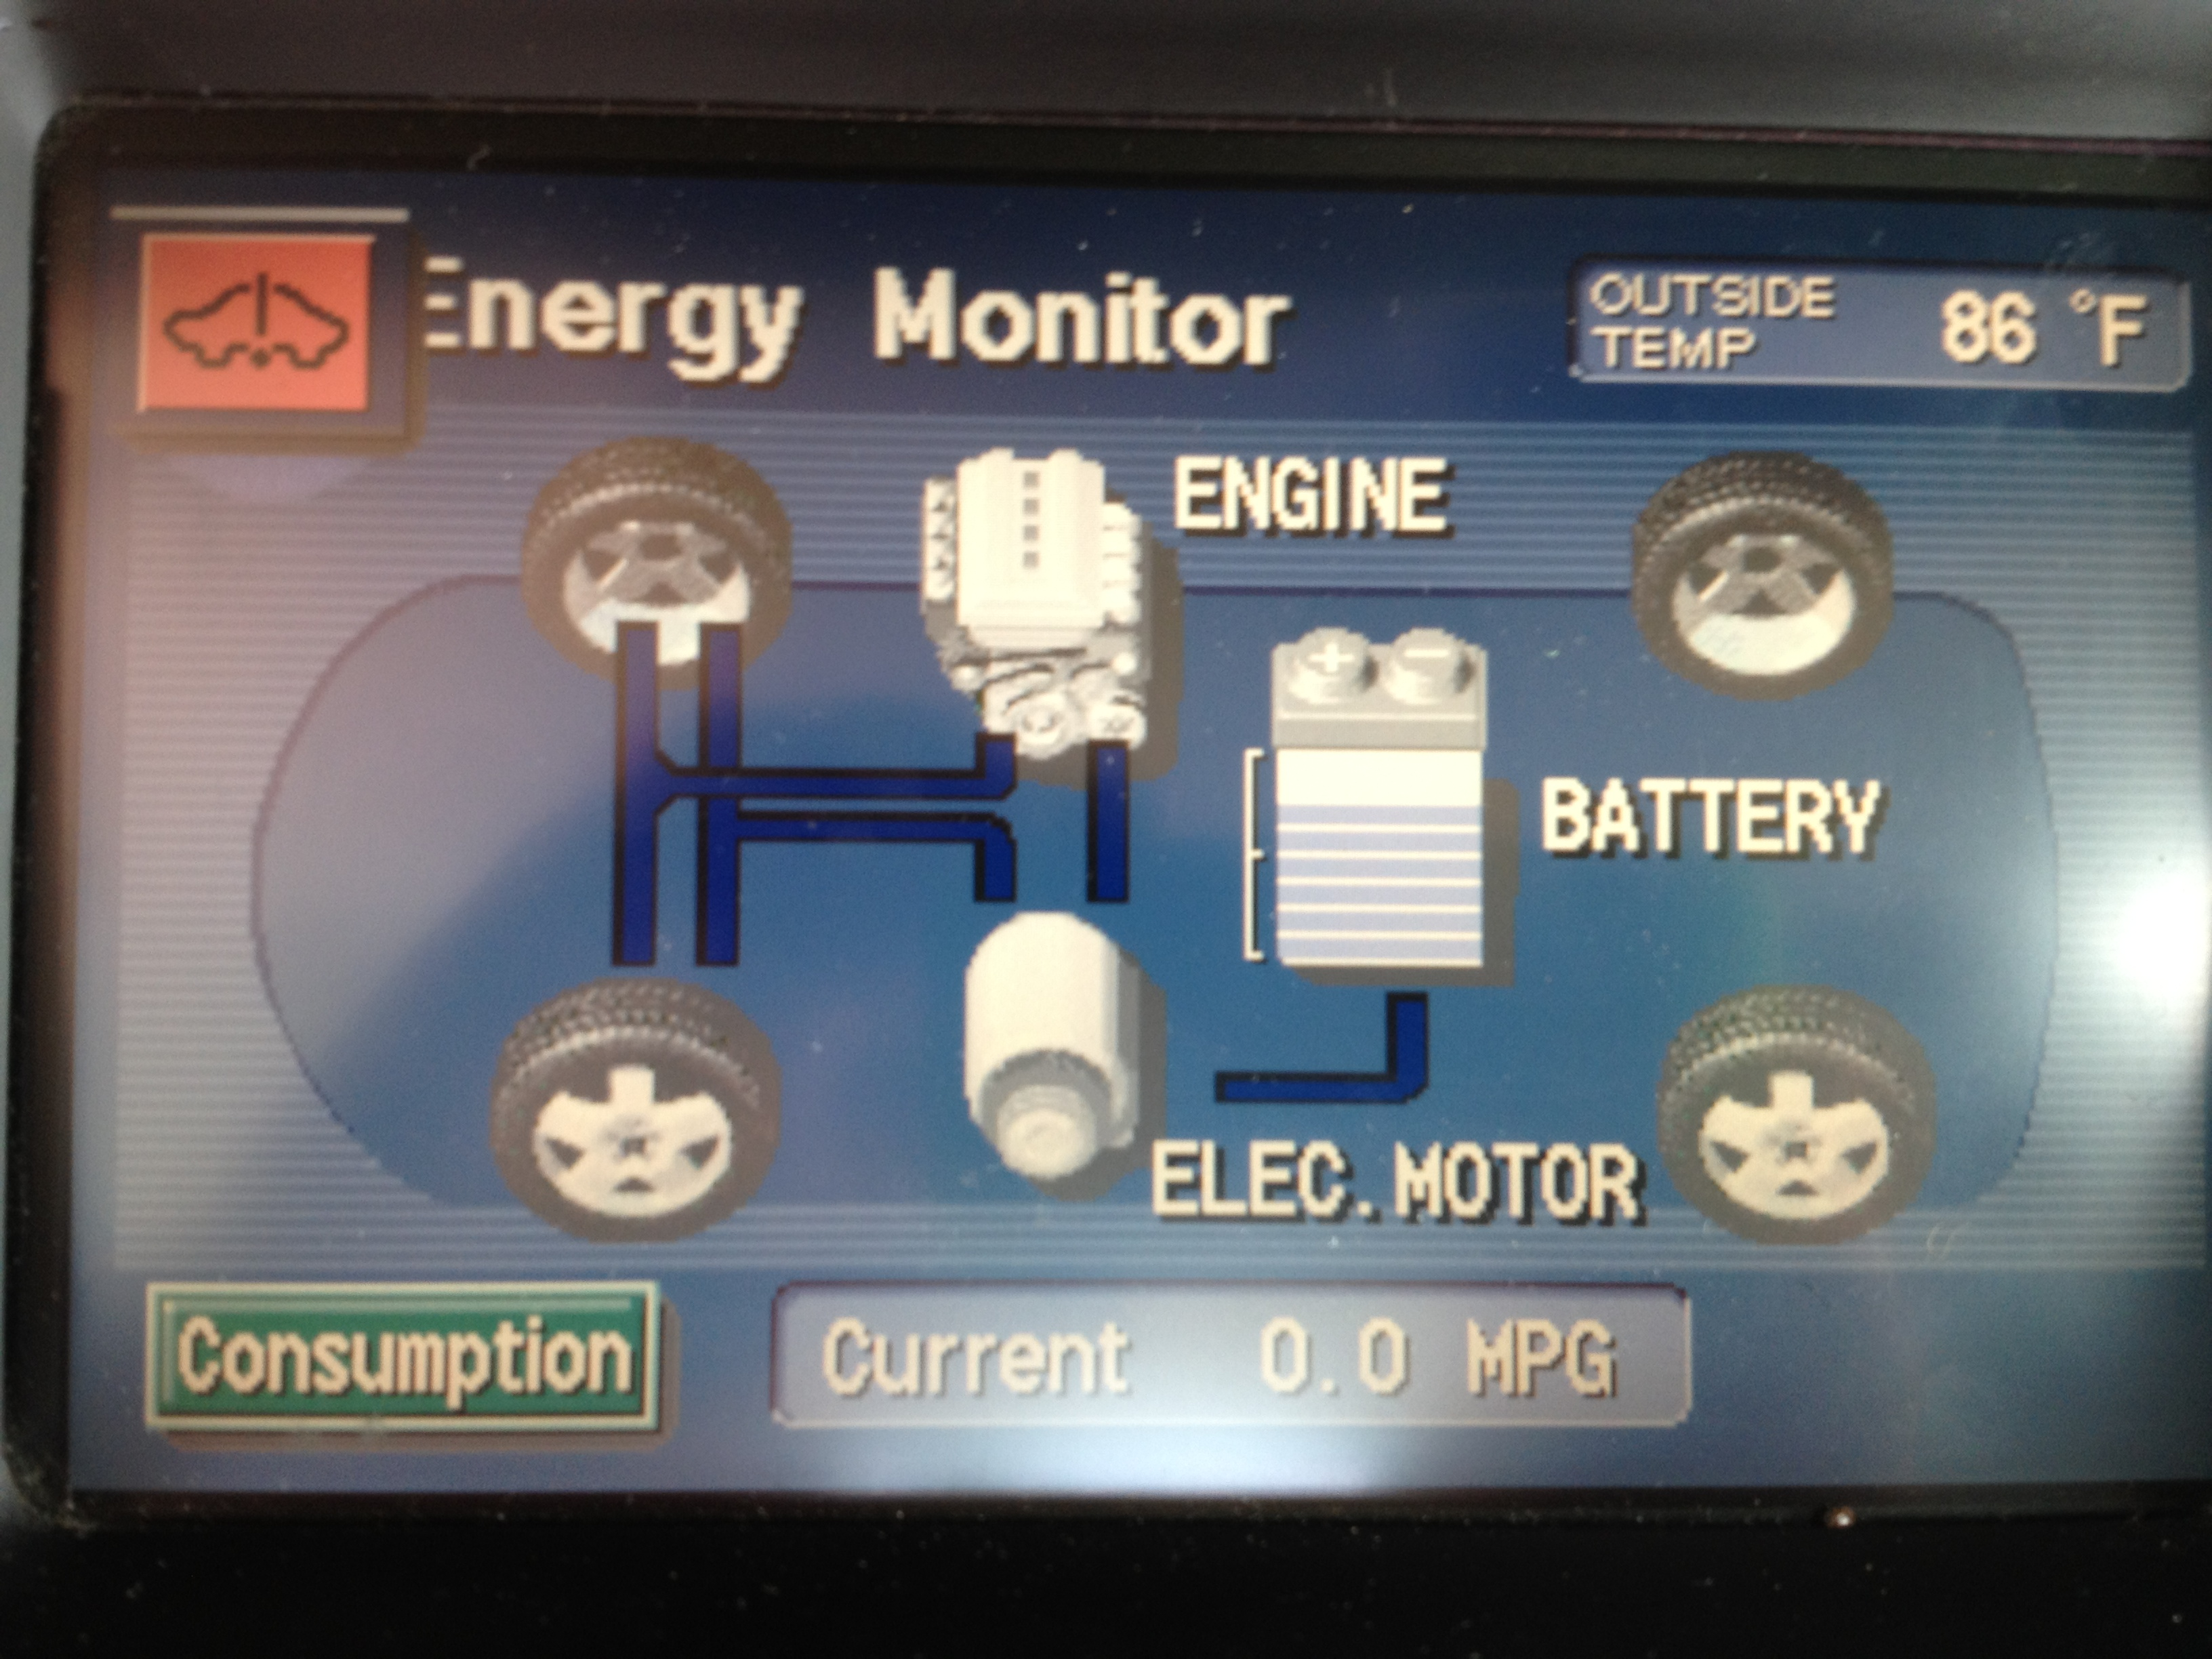 Img together with Image moreover Volt Plug as well New Beetle Fuse Card Large April also . on 2005 toyota prius hybrid warning lights